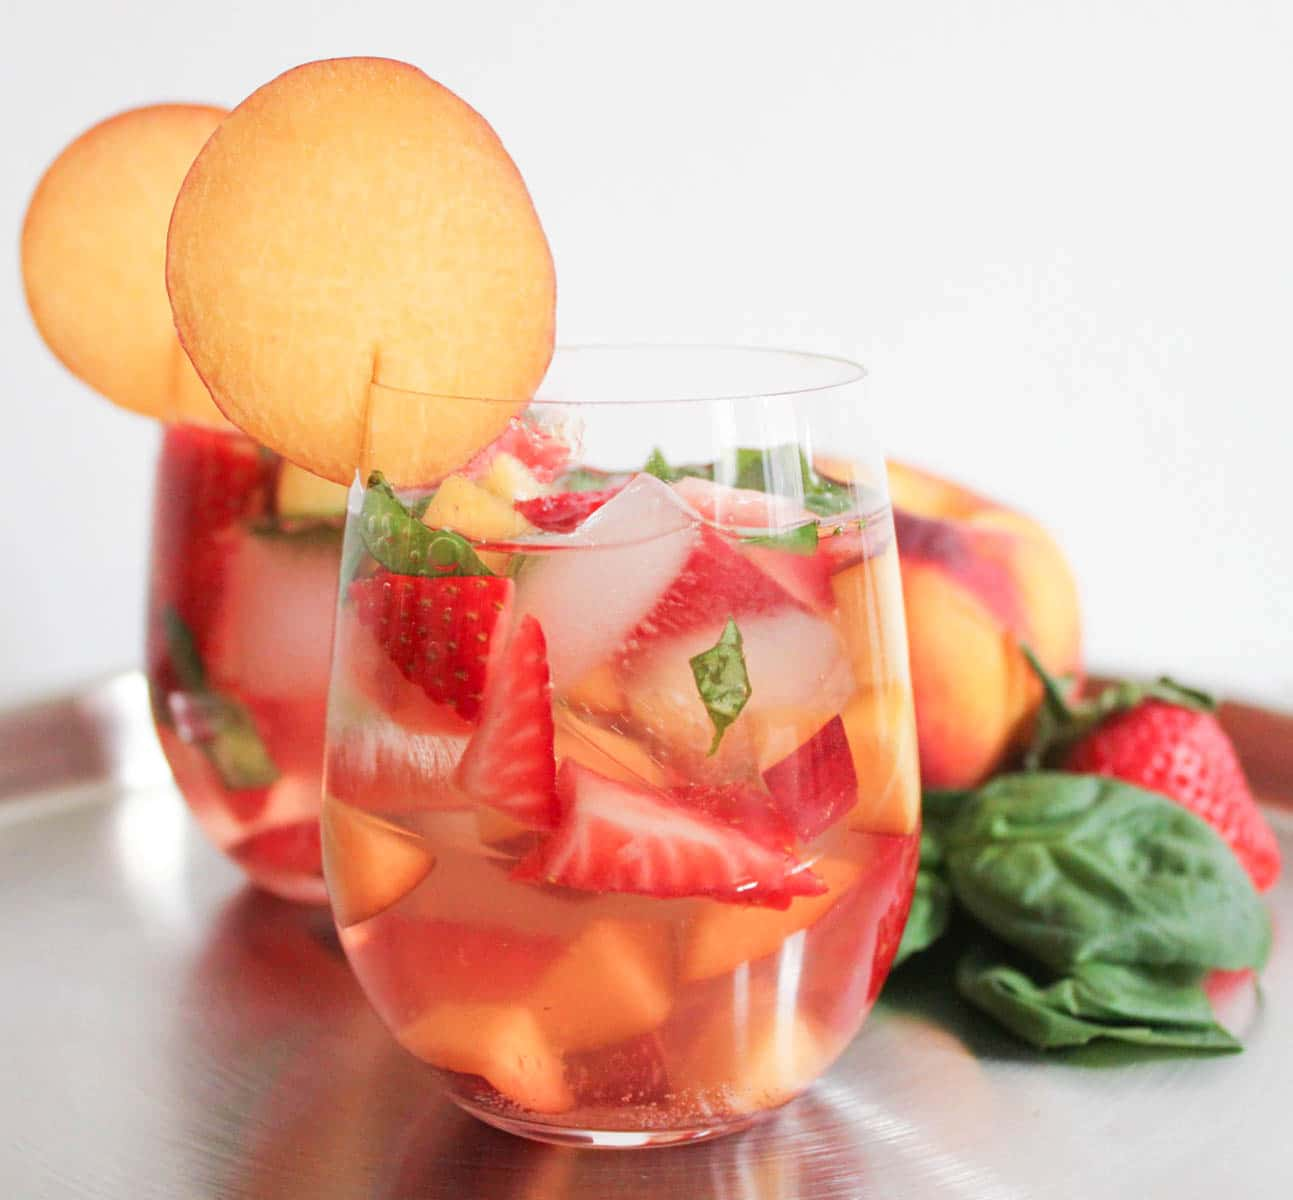 Two stemless wine glasses filled with sparkling rose sangria containing strawberries, peaches, and basil on a table displaying the fruits in their whole forms.